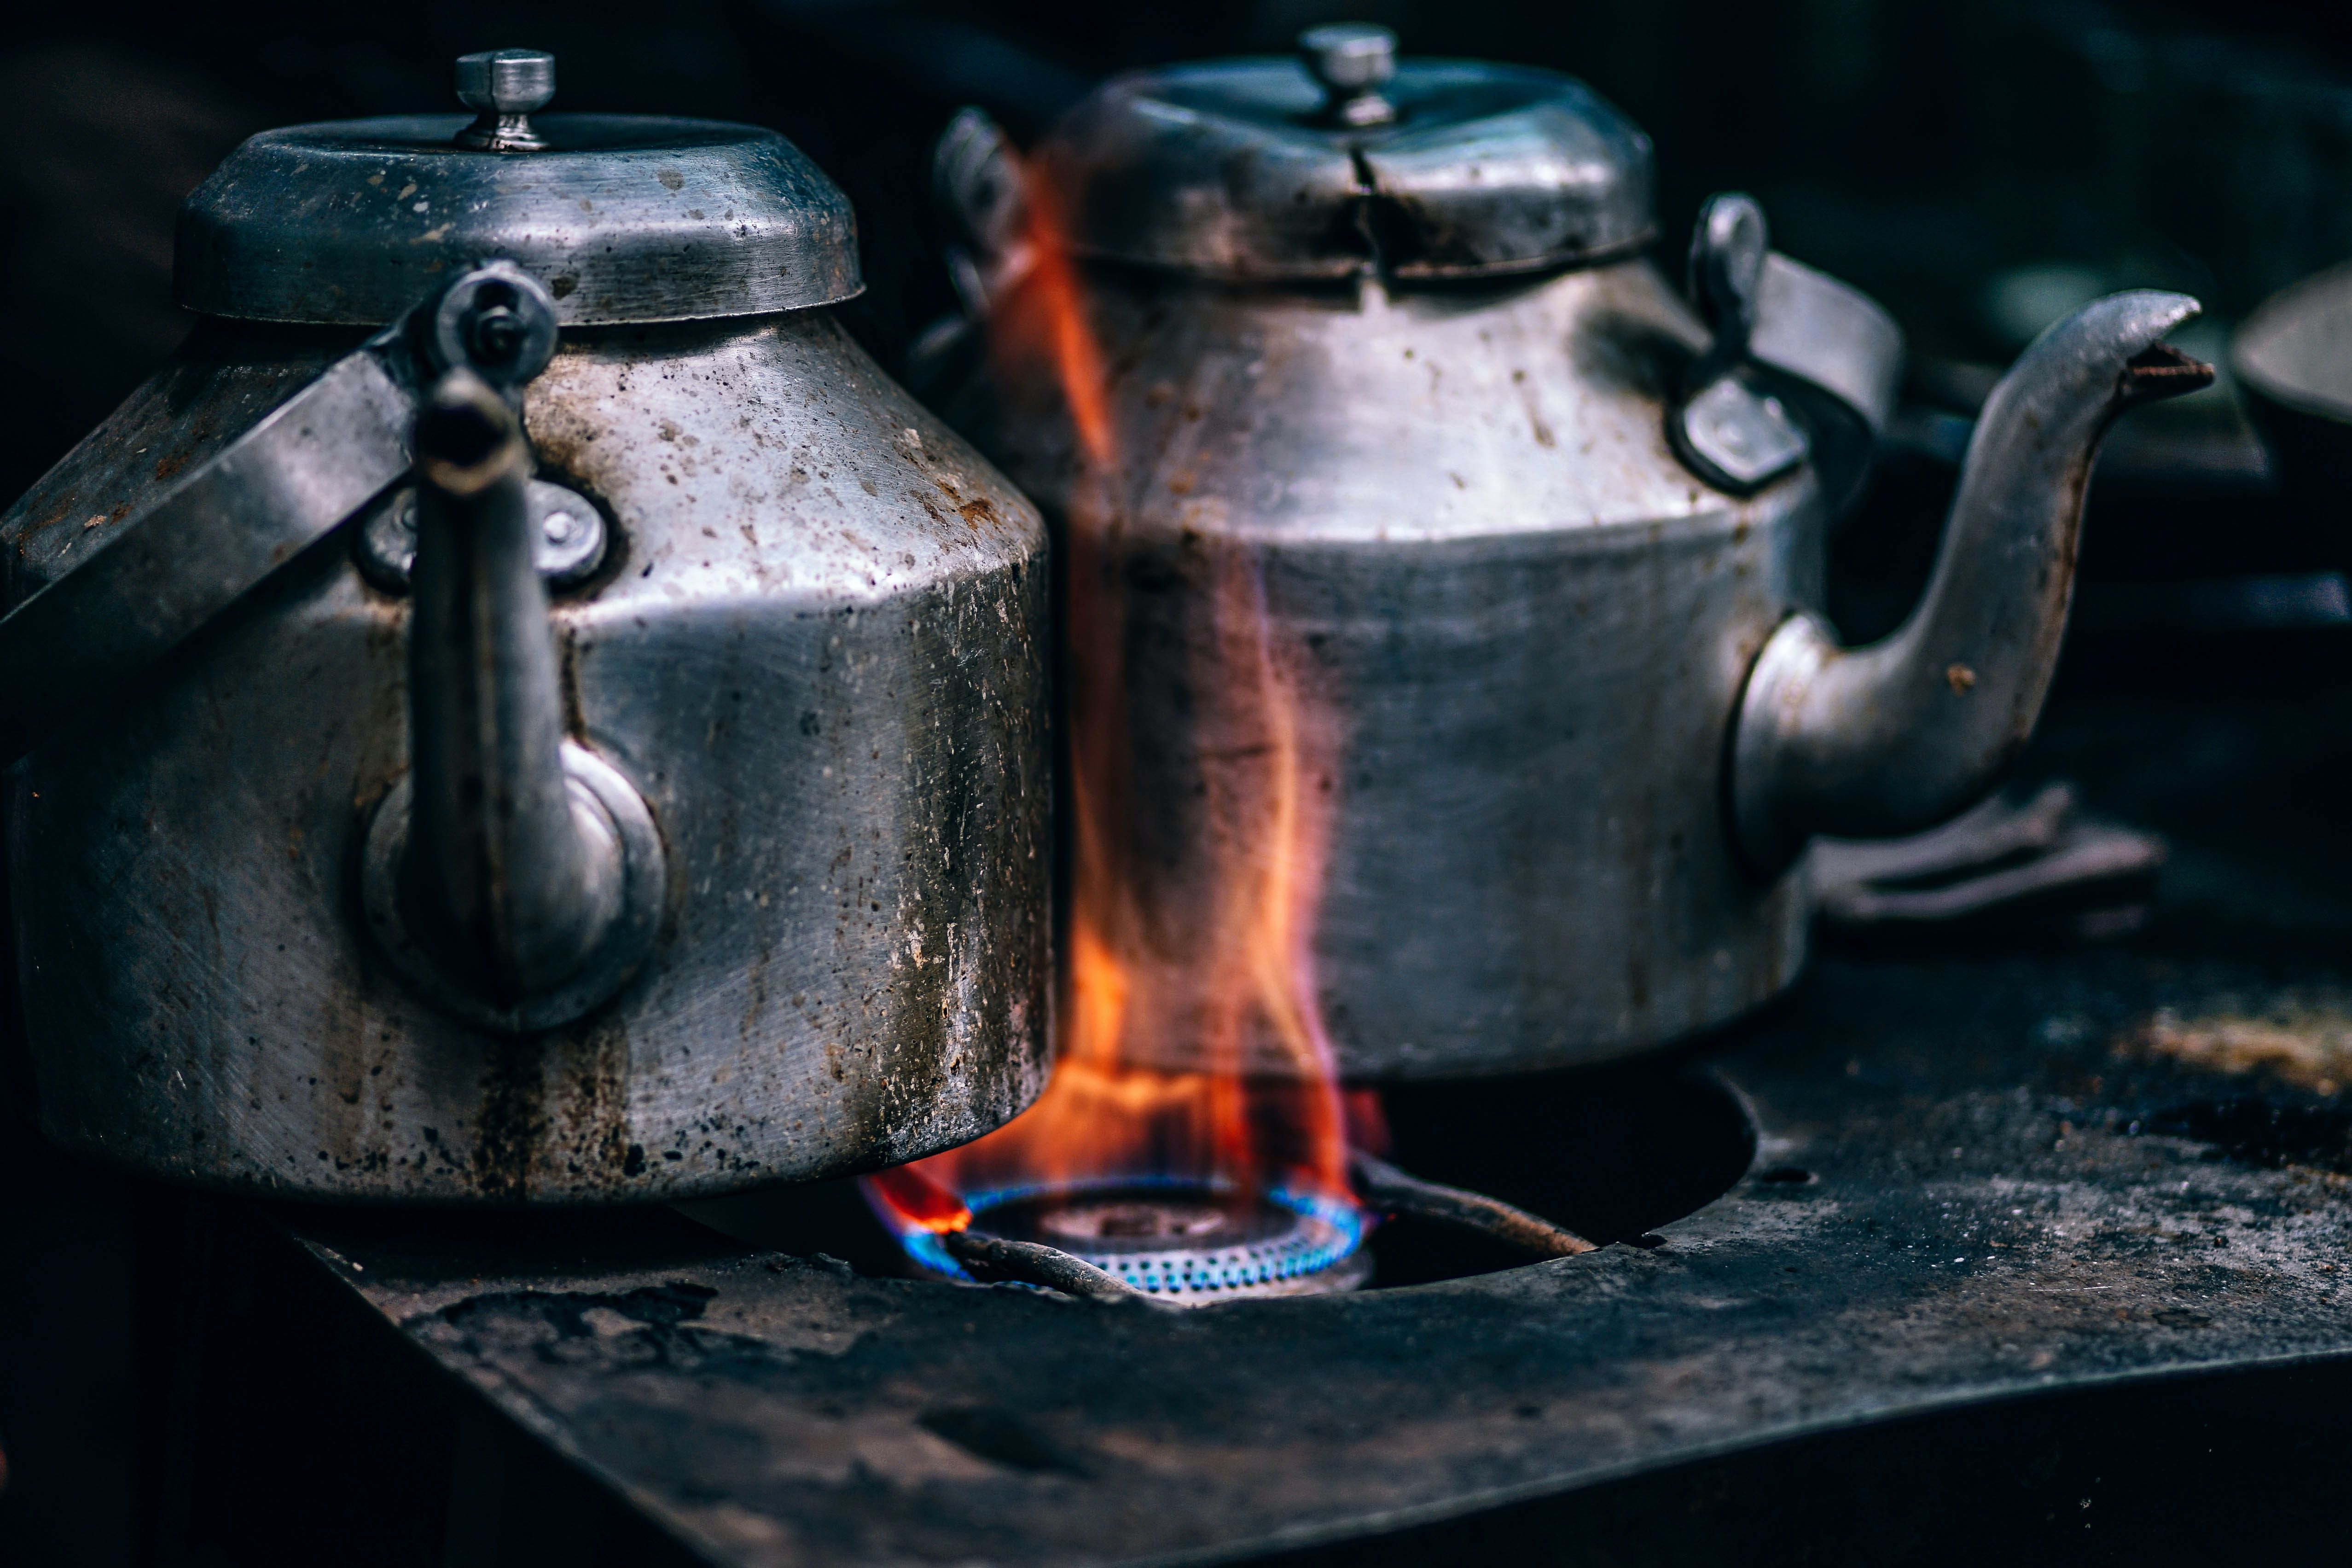 Rustic metal tea pots on an open flame